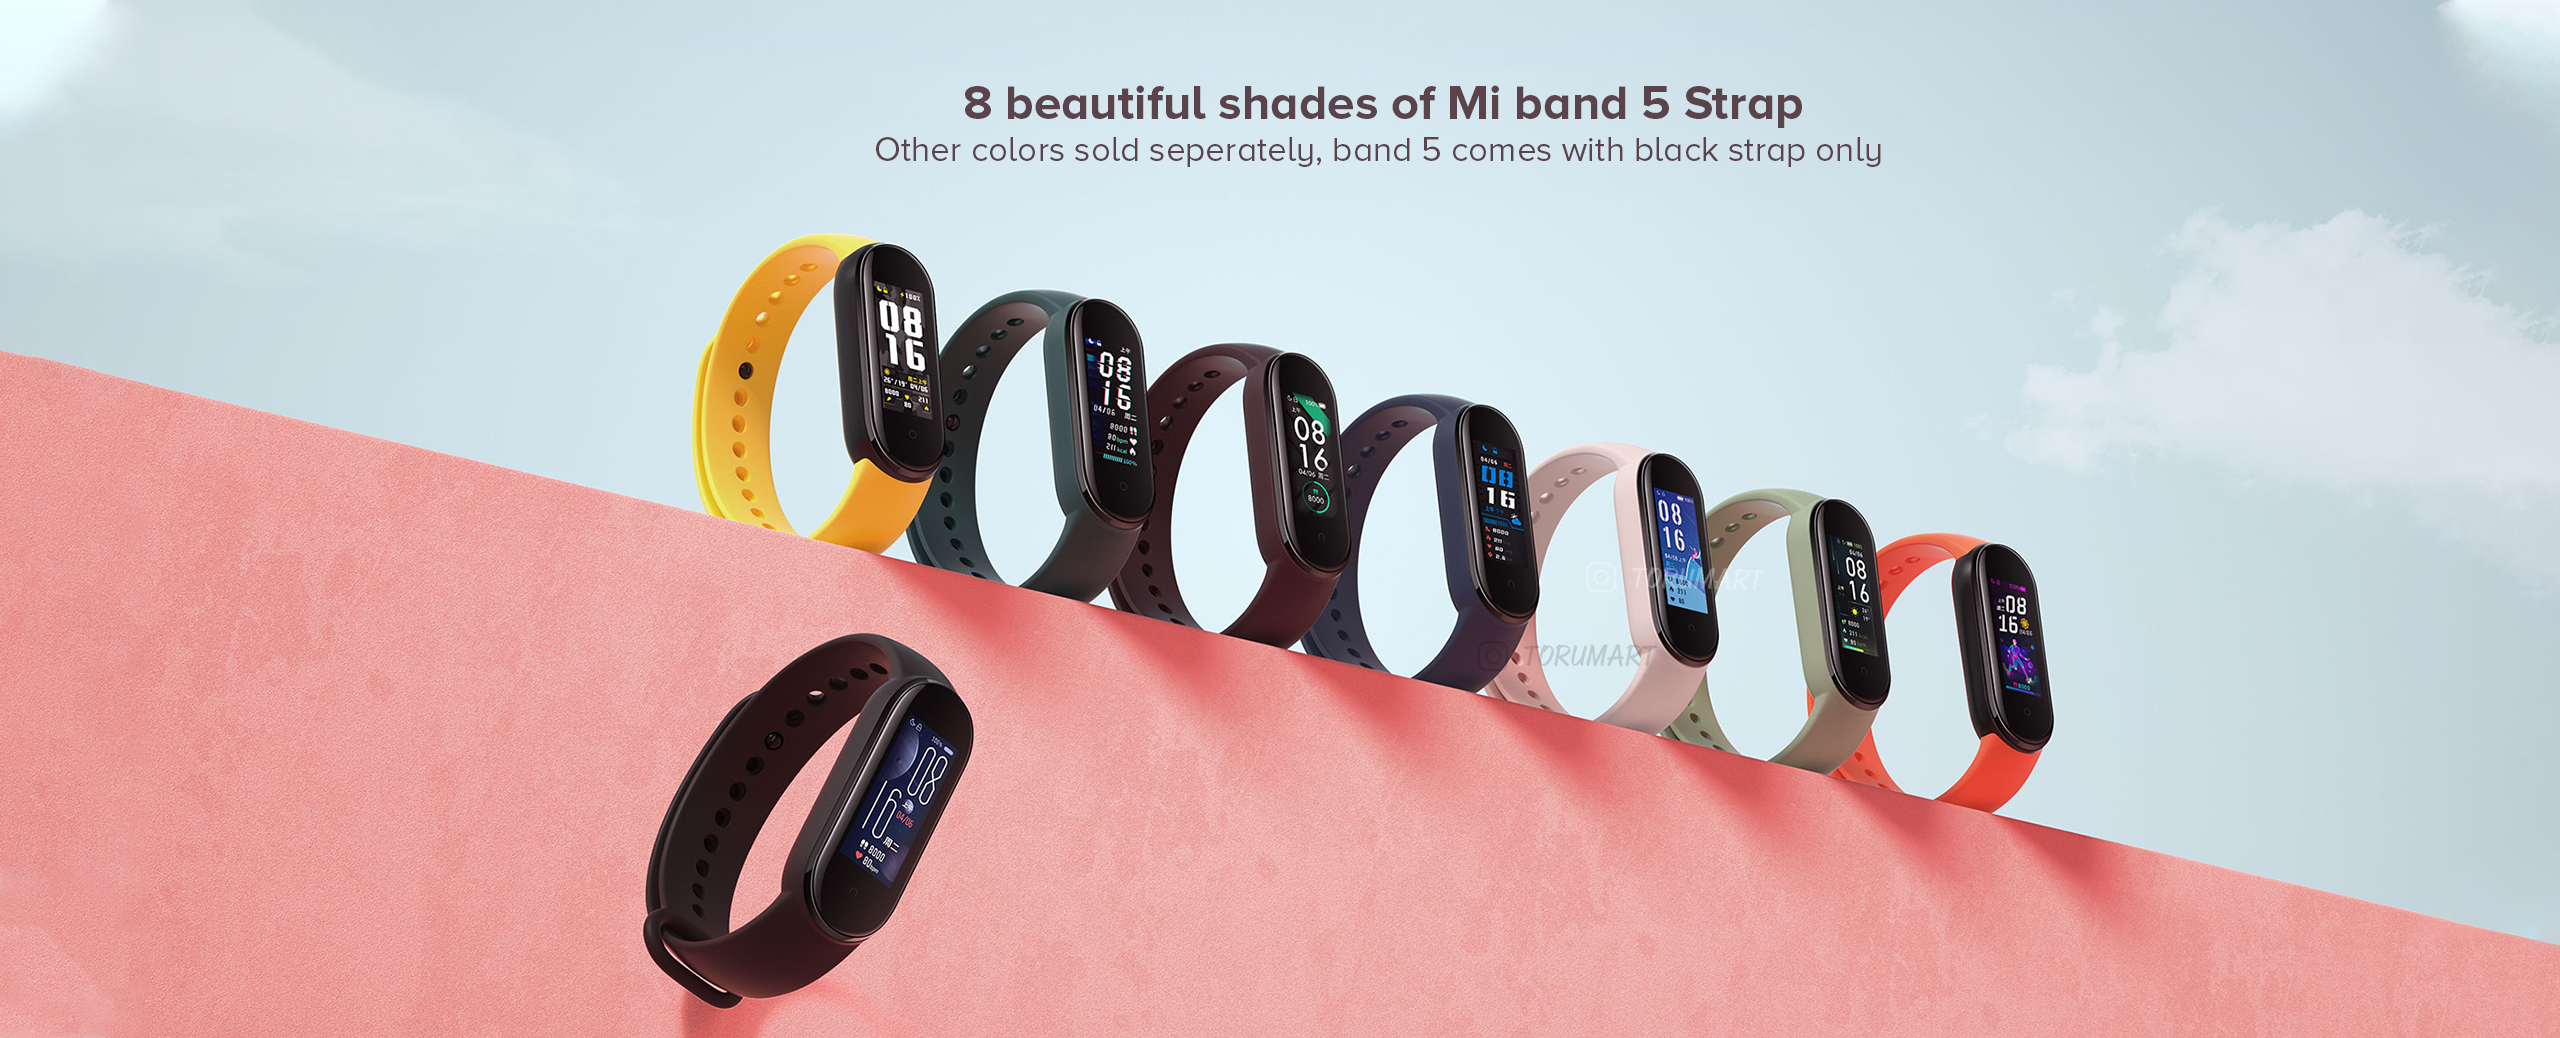 8 beautiful shades of Mi band 5 Strap